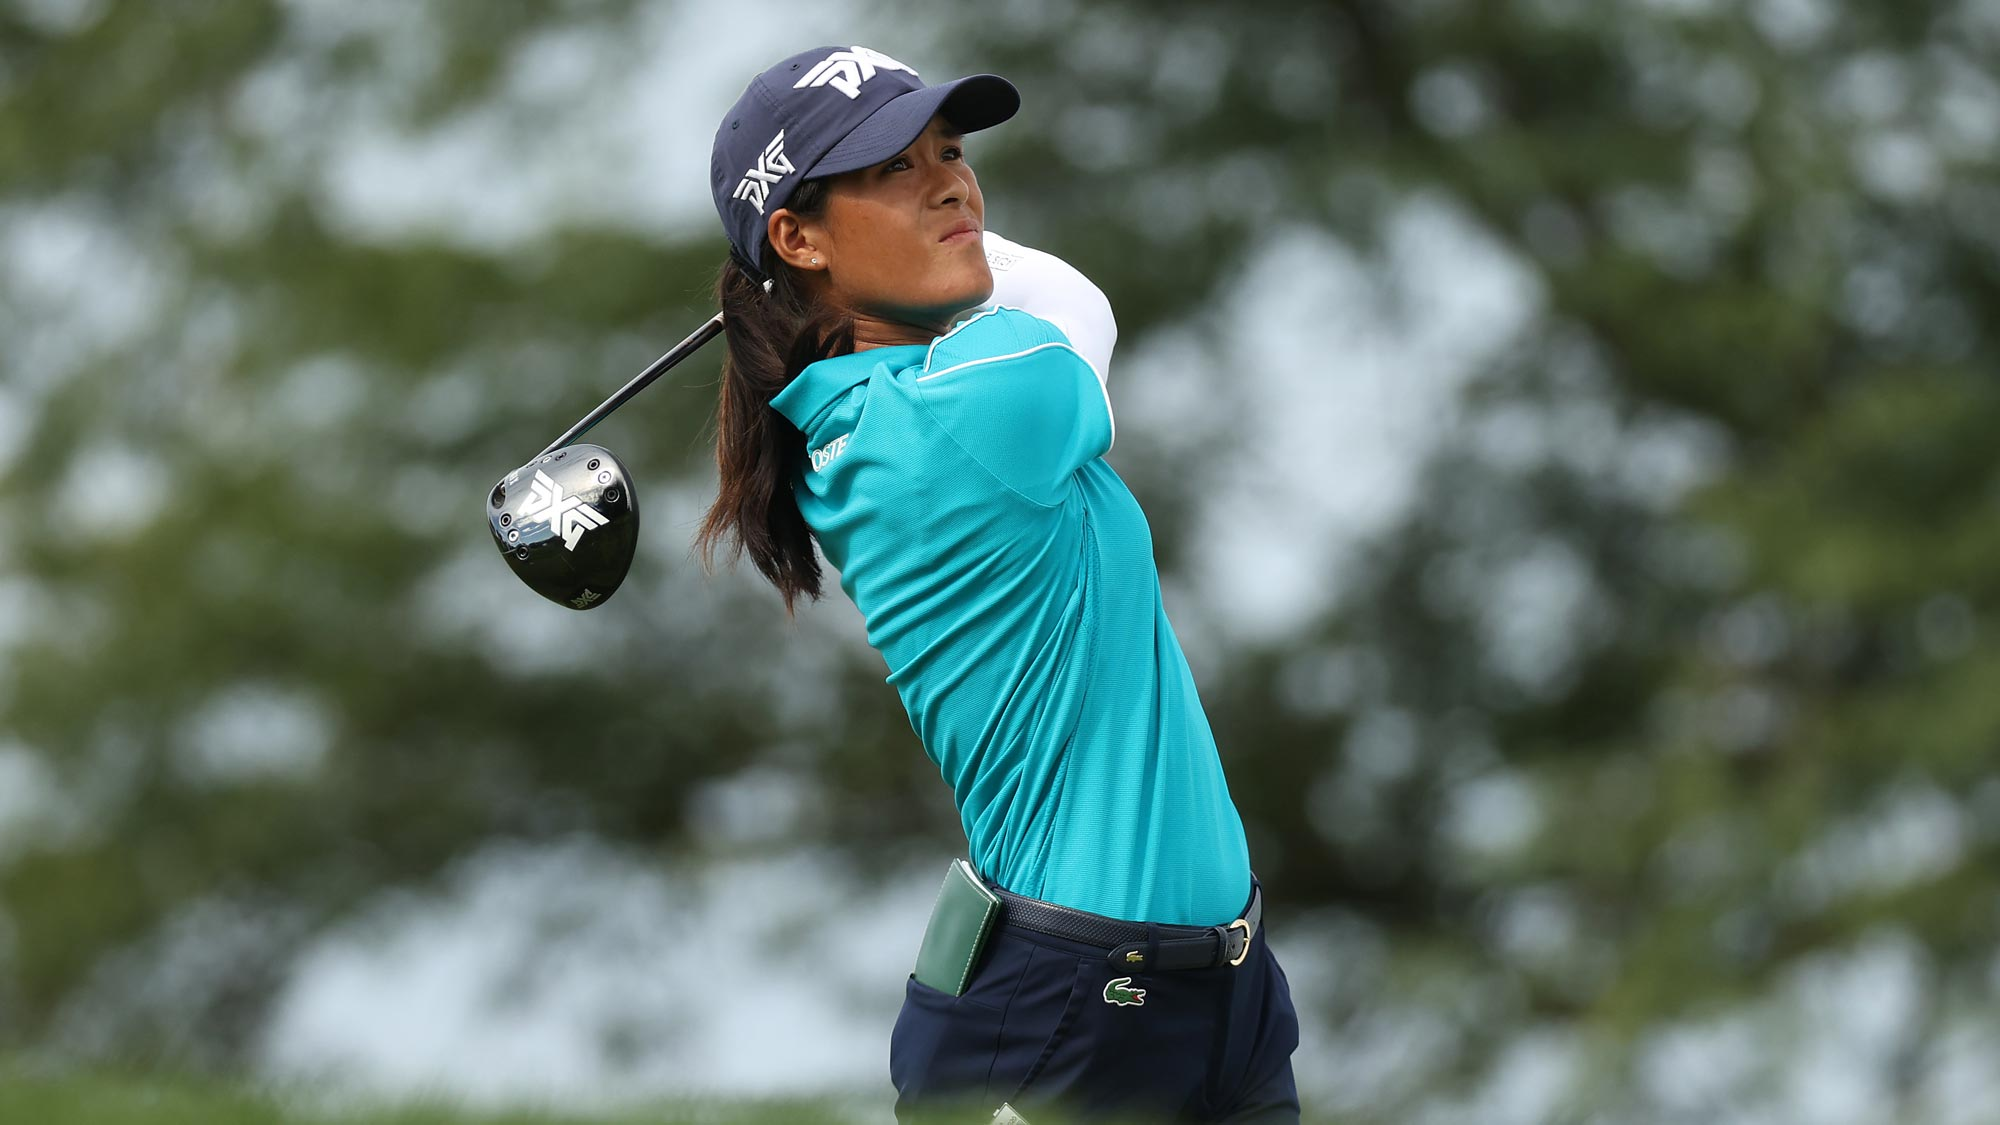 Celine Boutier of France plays her shot from the 14th tee during the final round of the LPGA Drive On Championship